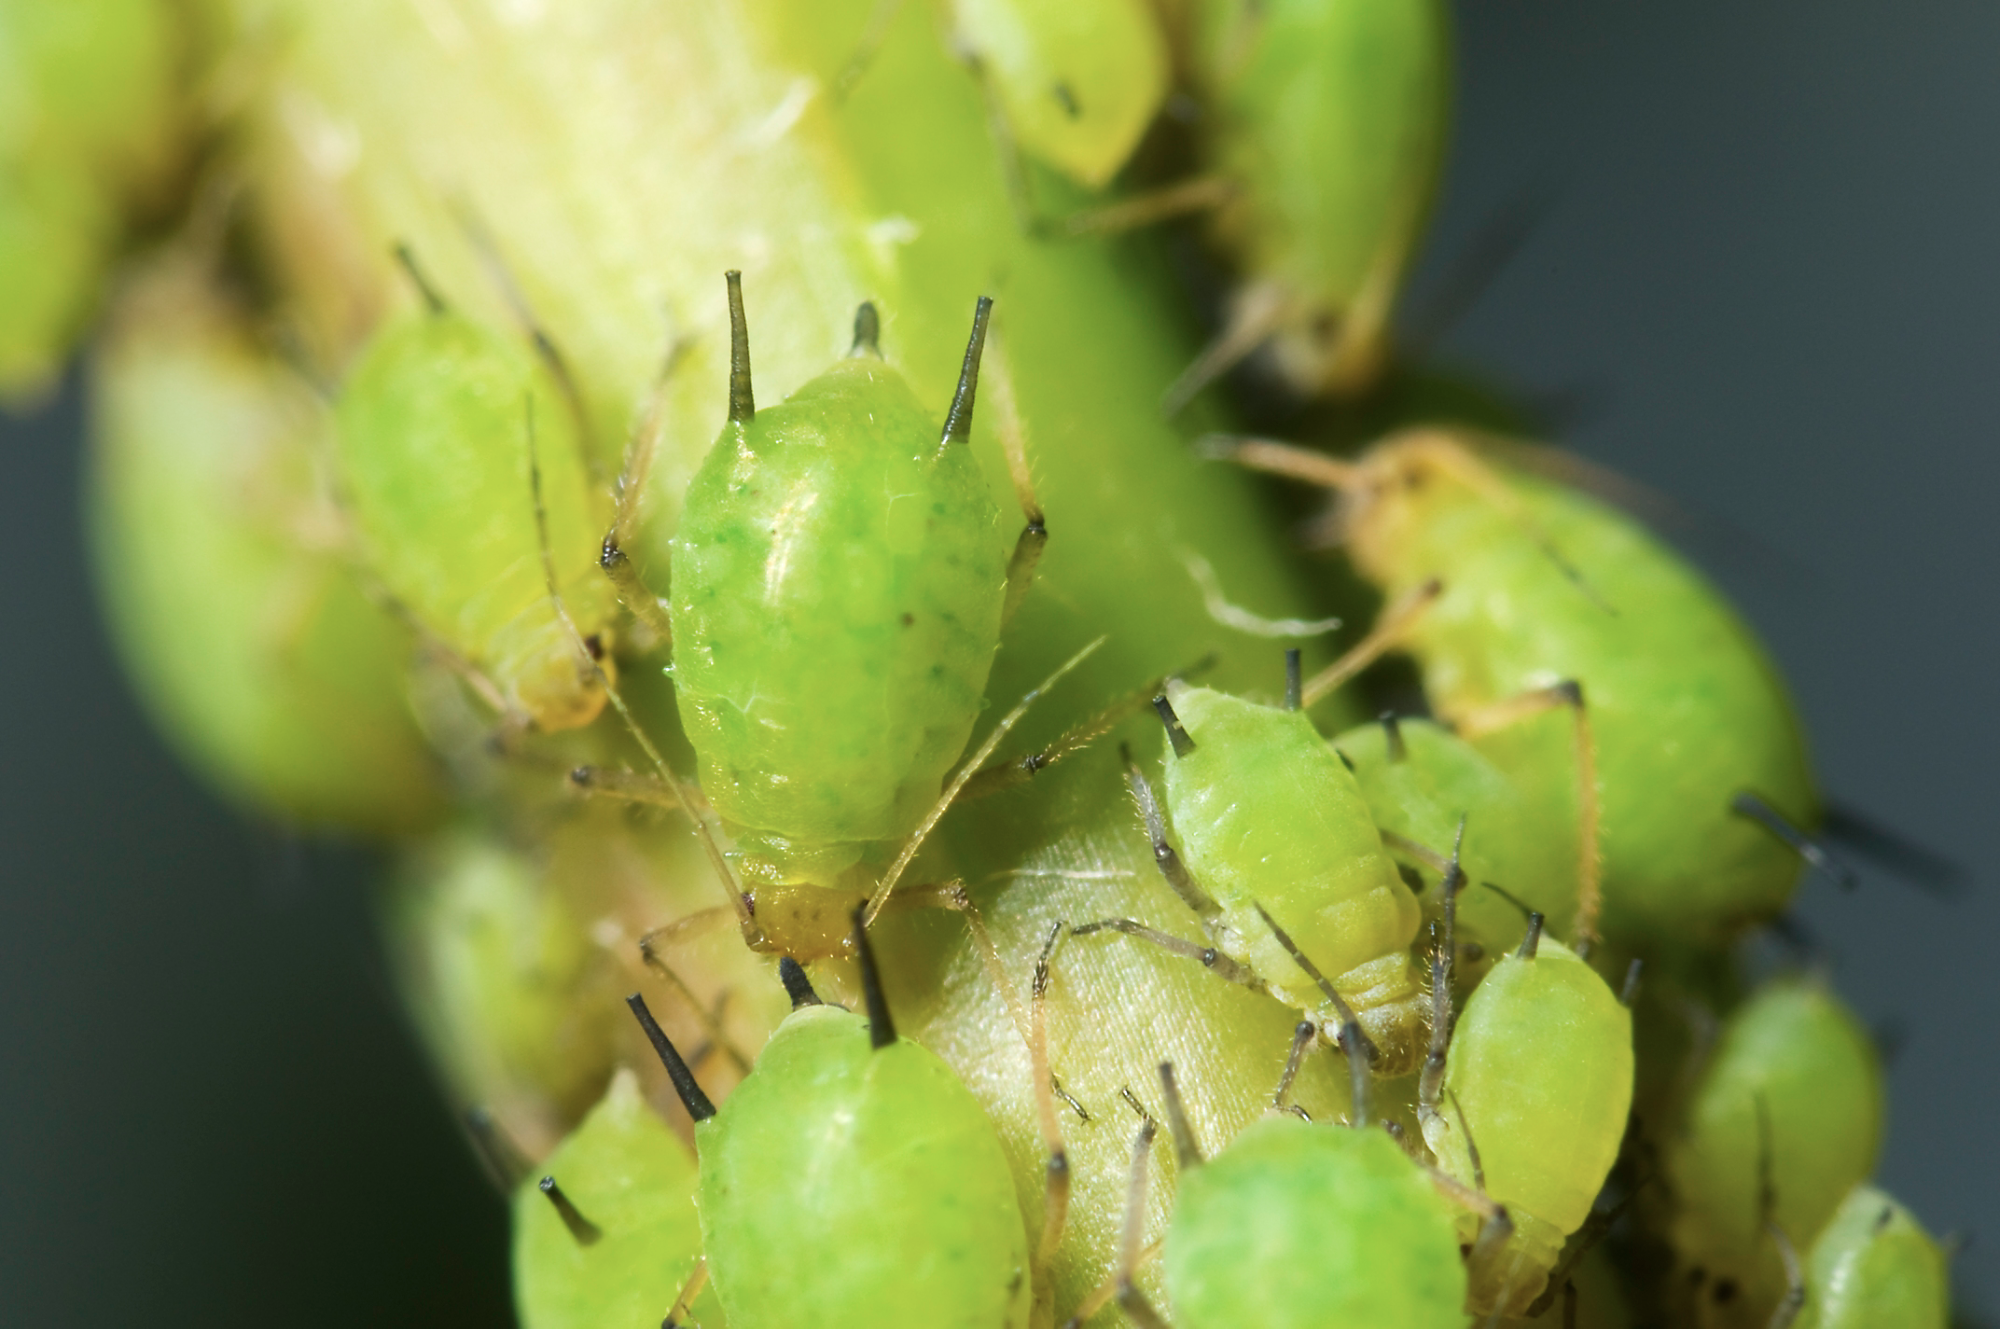 Aphids on stem